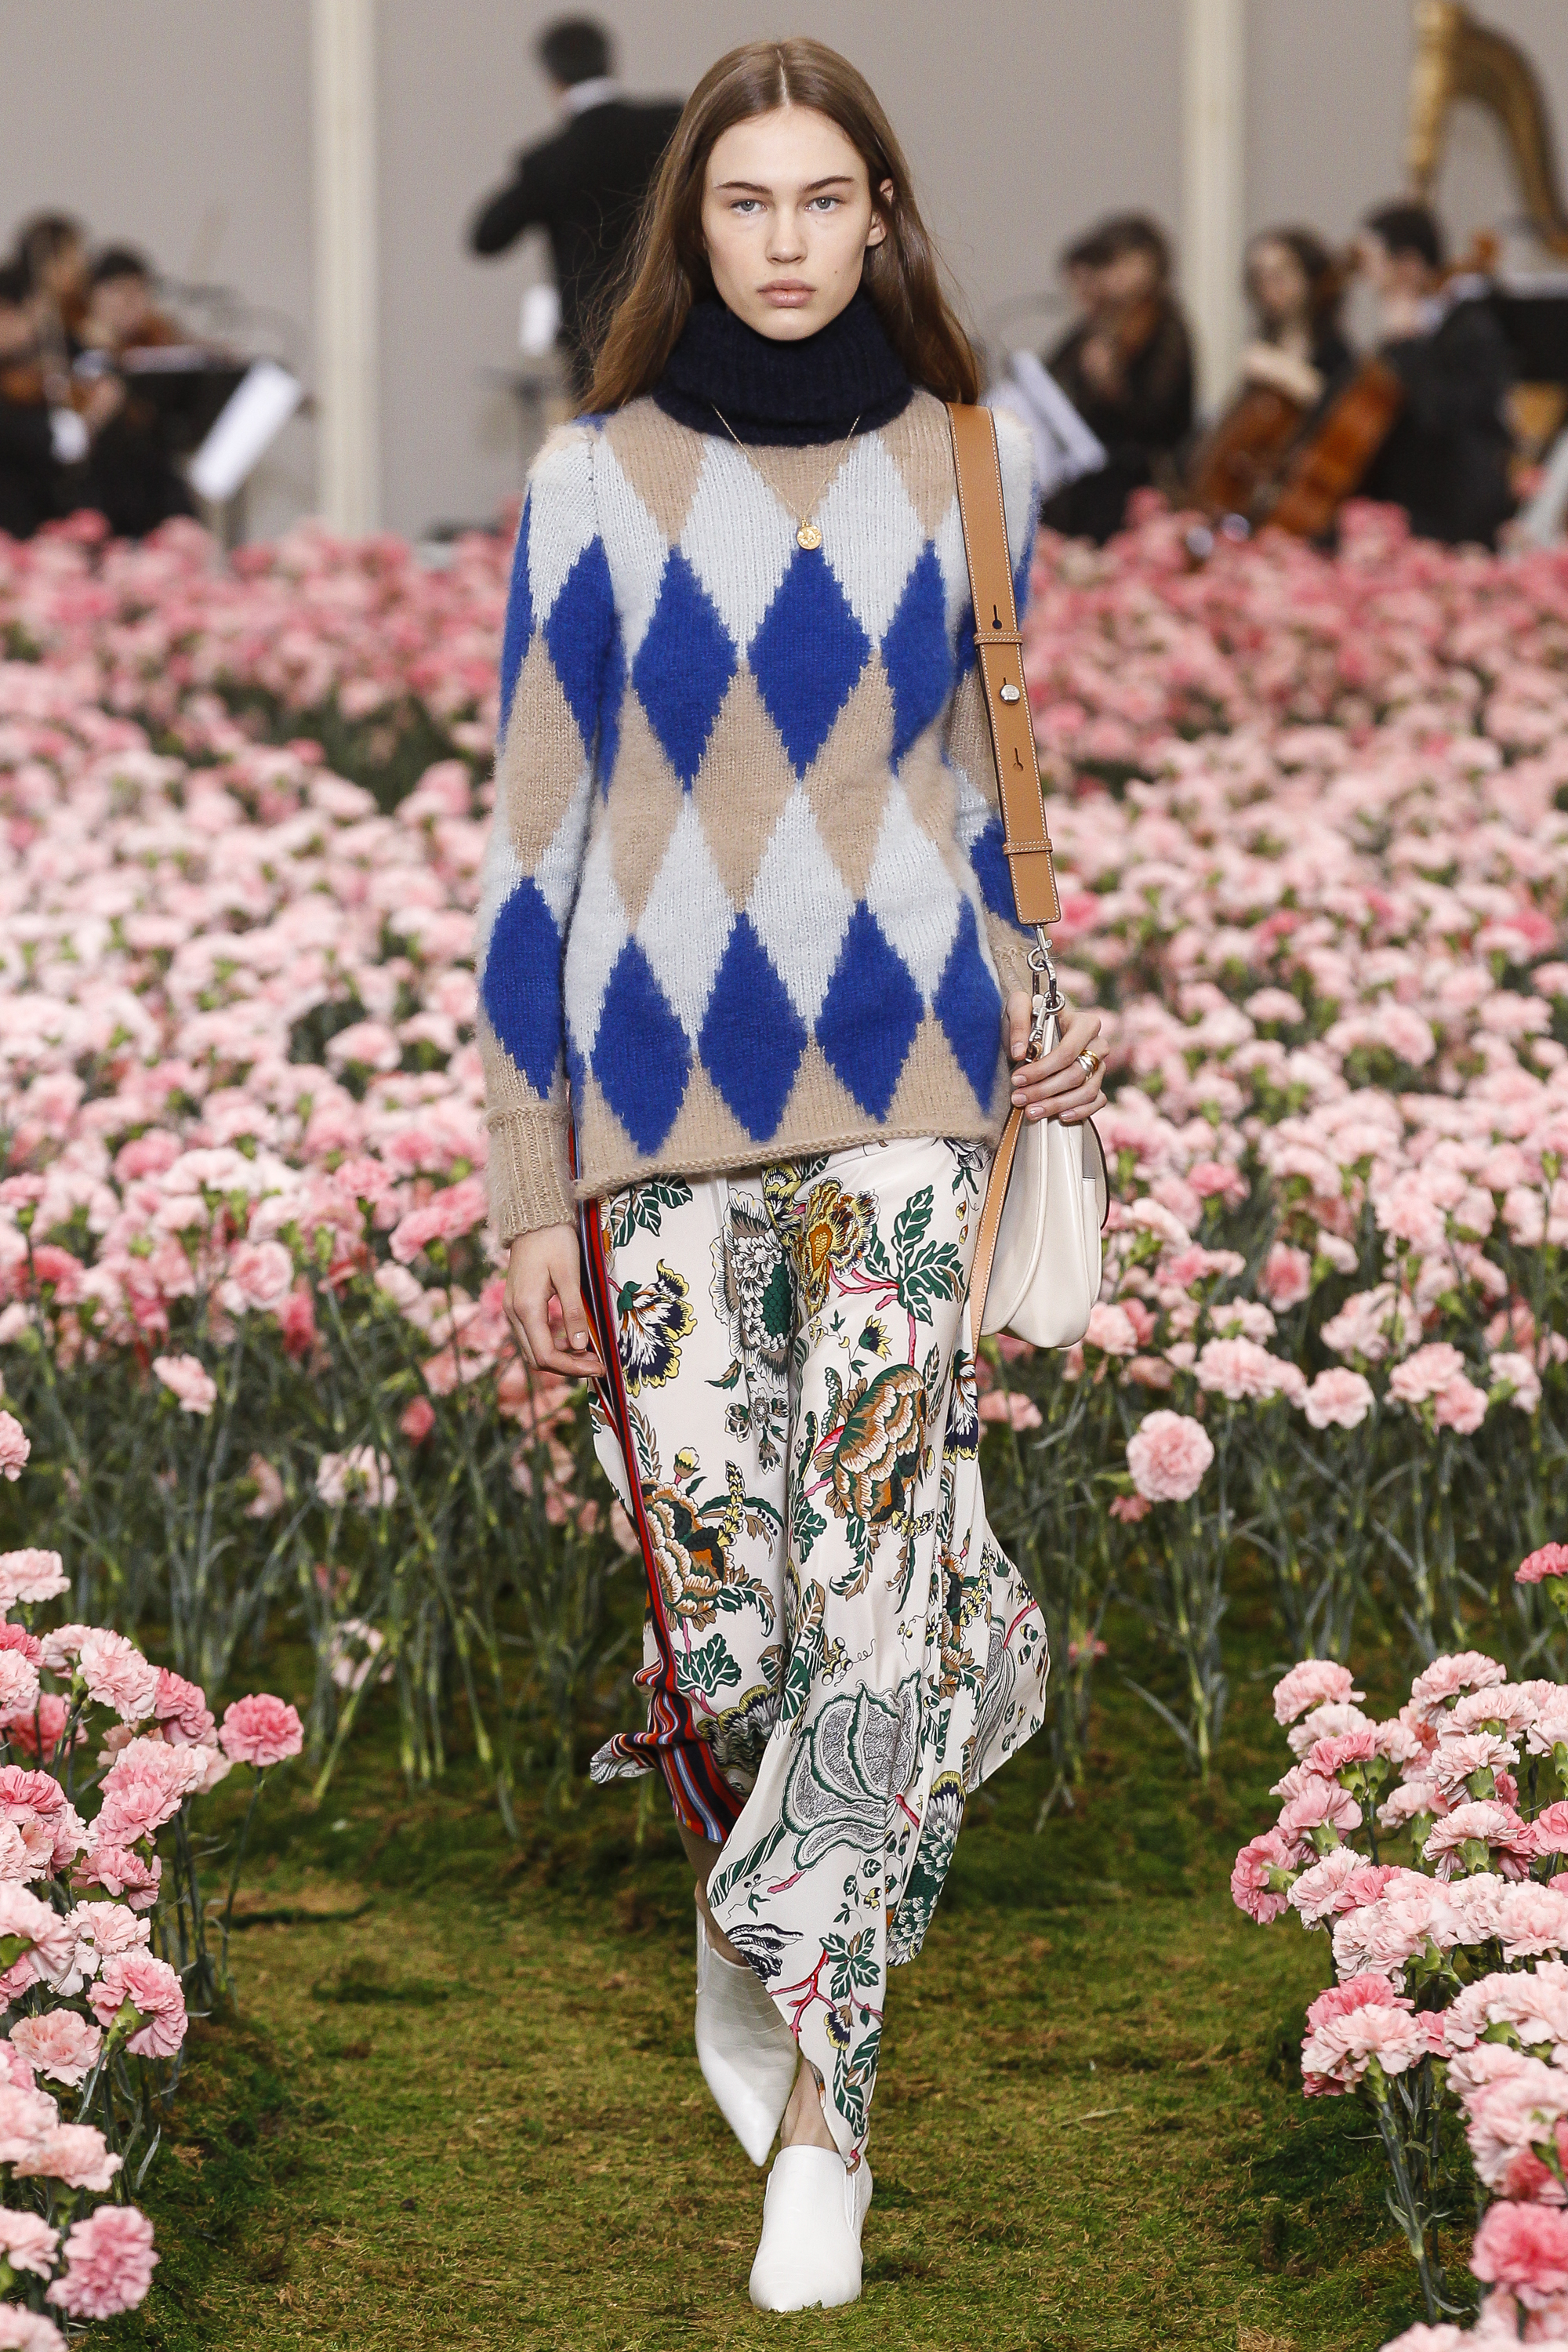 BLOOMING PALETTE AT TORY BURCH A/W 2018